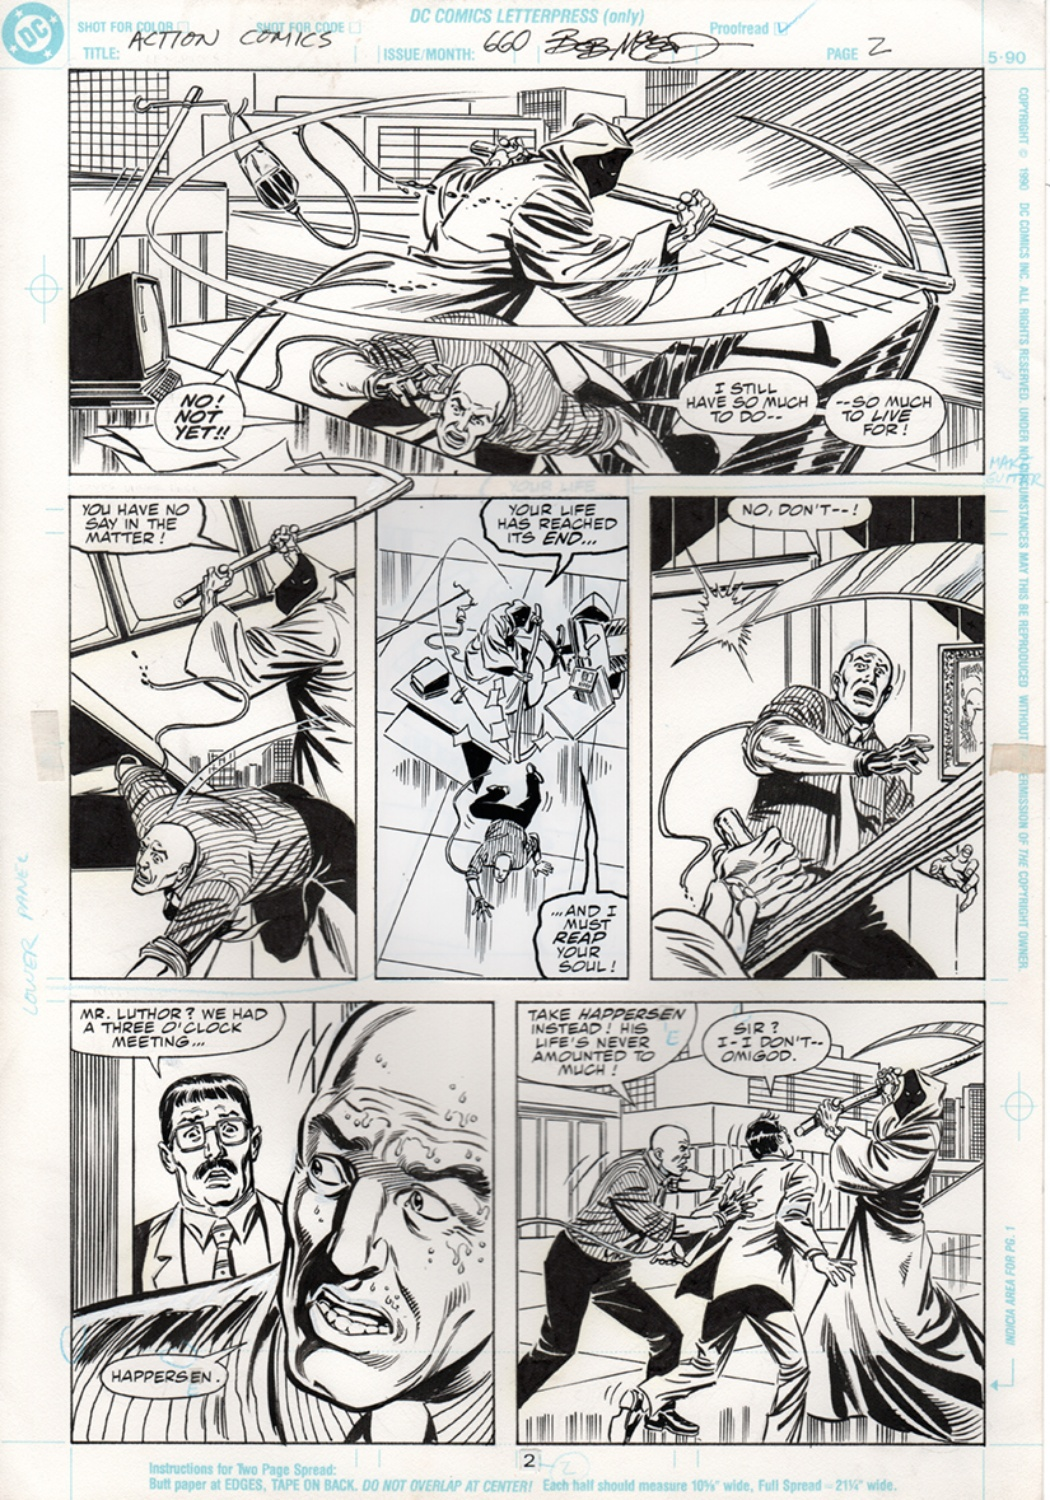 Original Art Page - Action Comics - 660 pg02